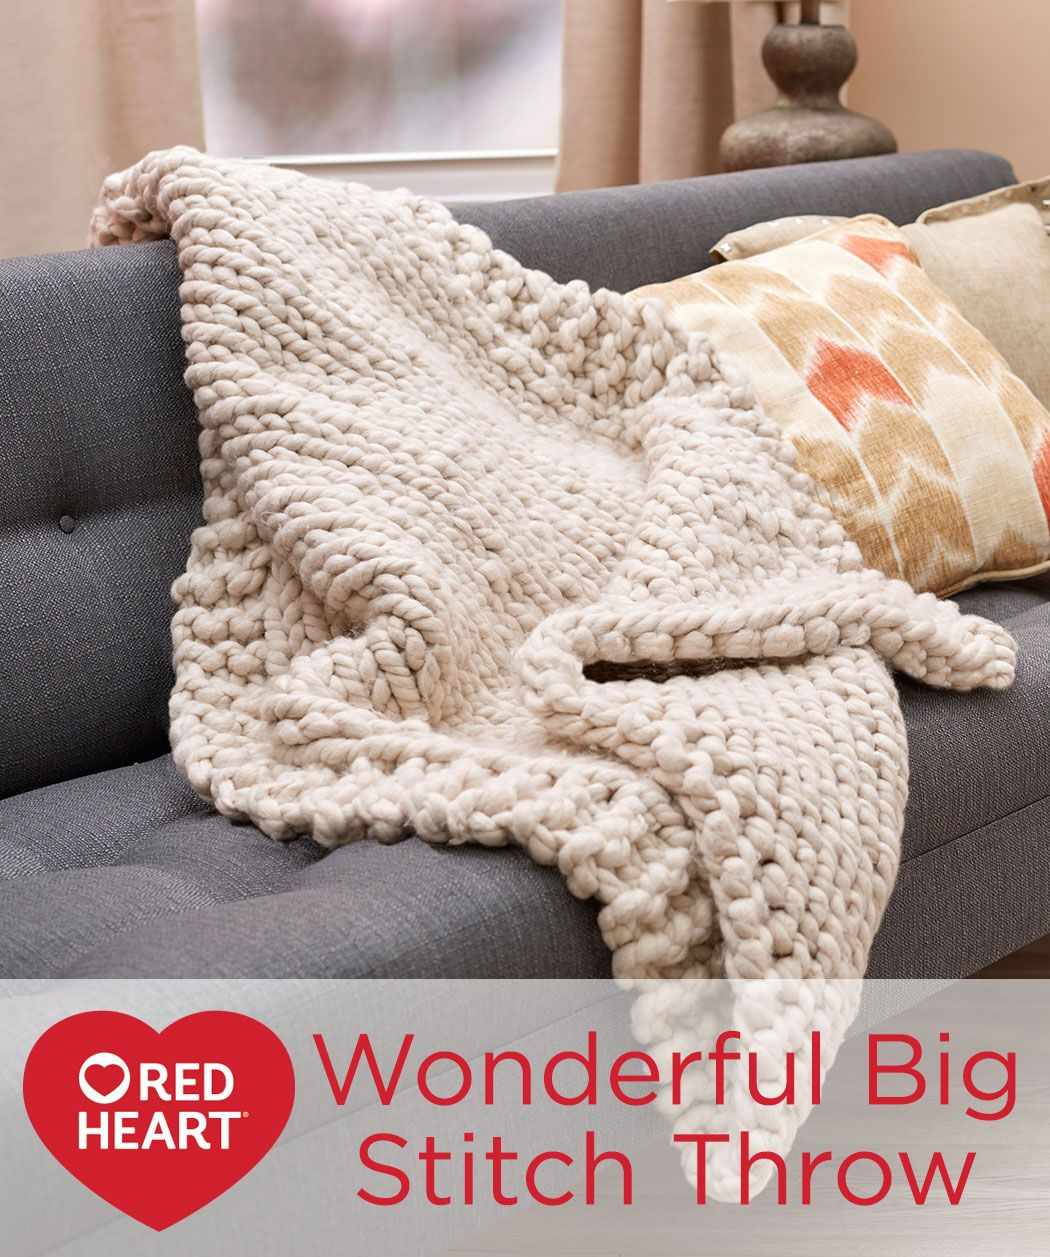 Wonderful Big Stitch Throw Free Knitting Pattern In Red